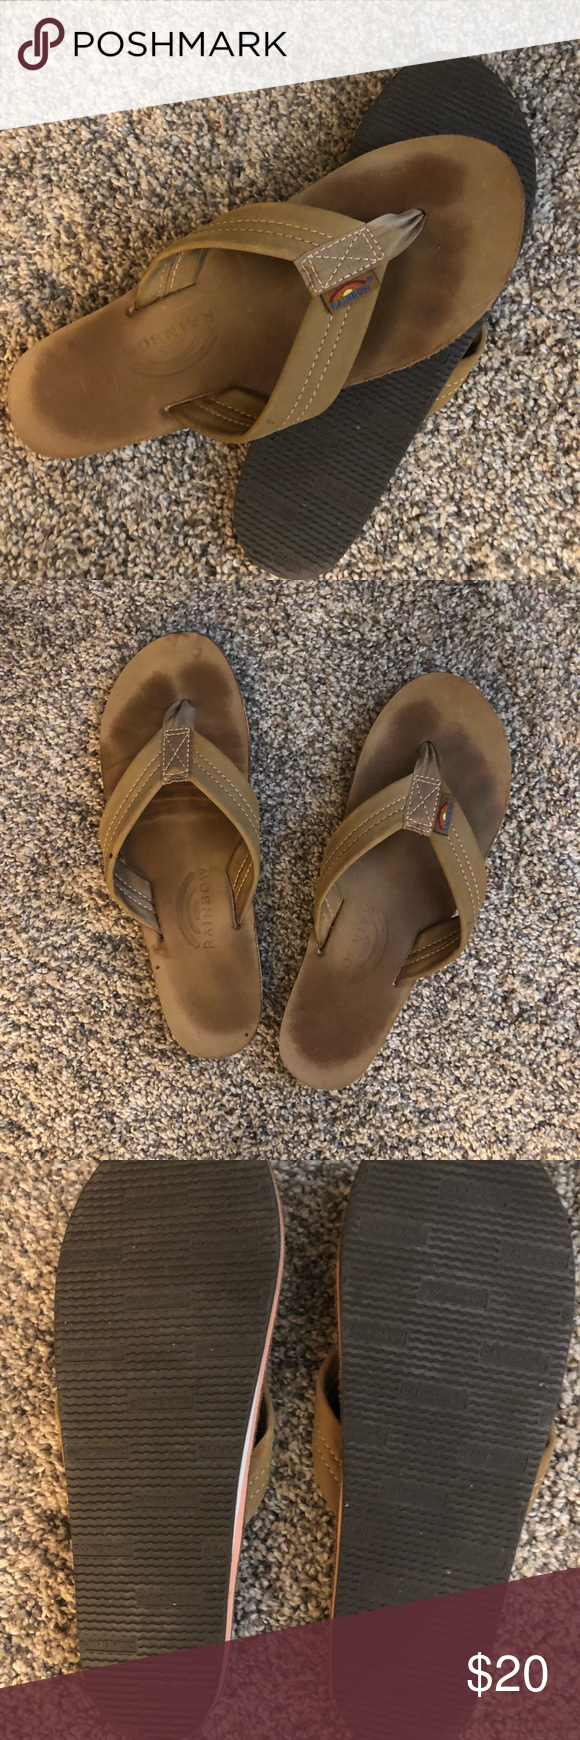 Sale Rainbow Sandals Ladies Size Large Tan Rainbow Sandals Barely Worn In Size Large 7 5 8 5 In A Light Tan Color Rainb Rainbow Sandals Rainbow Shoes Worn